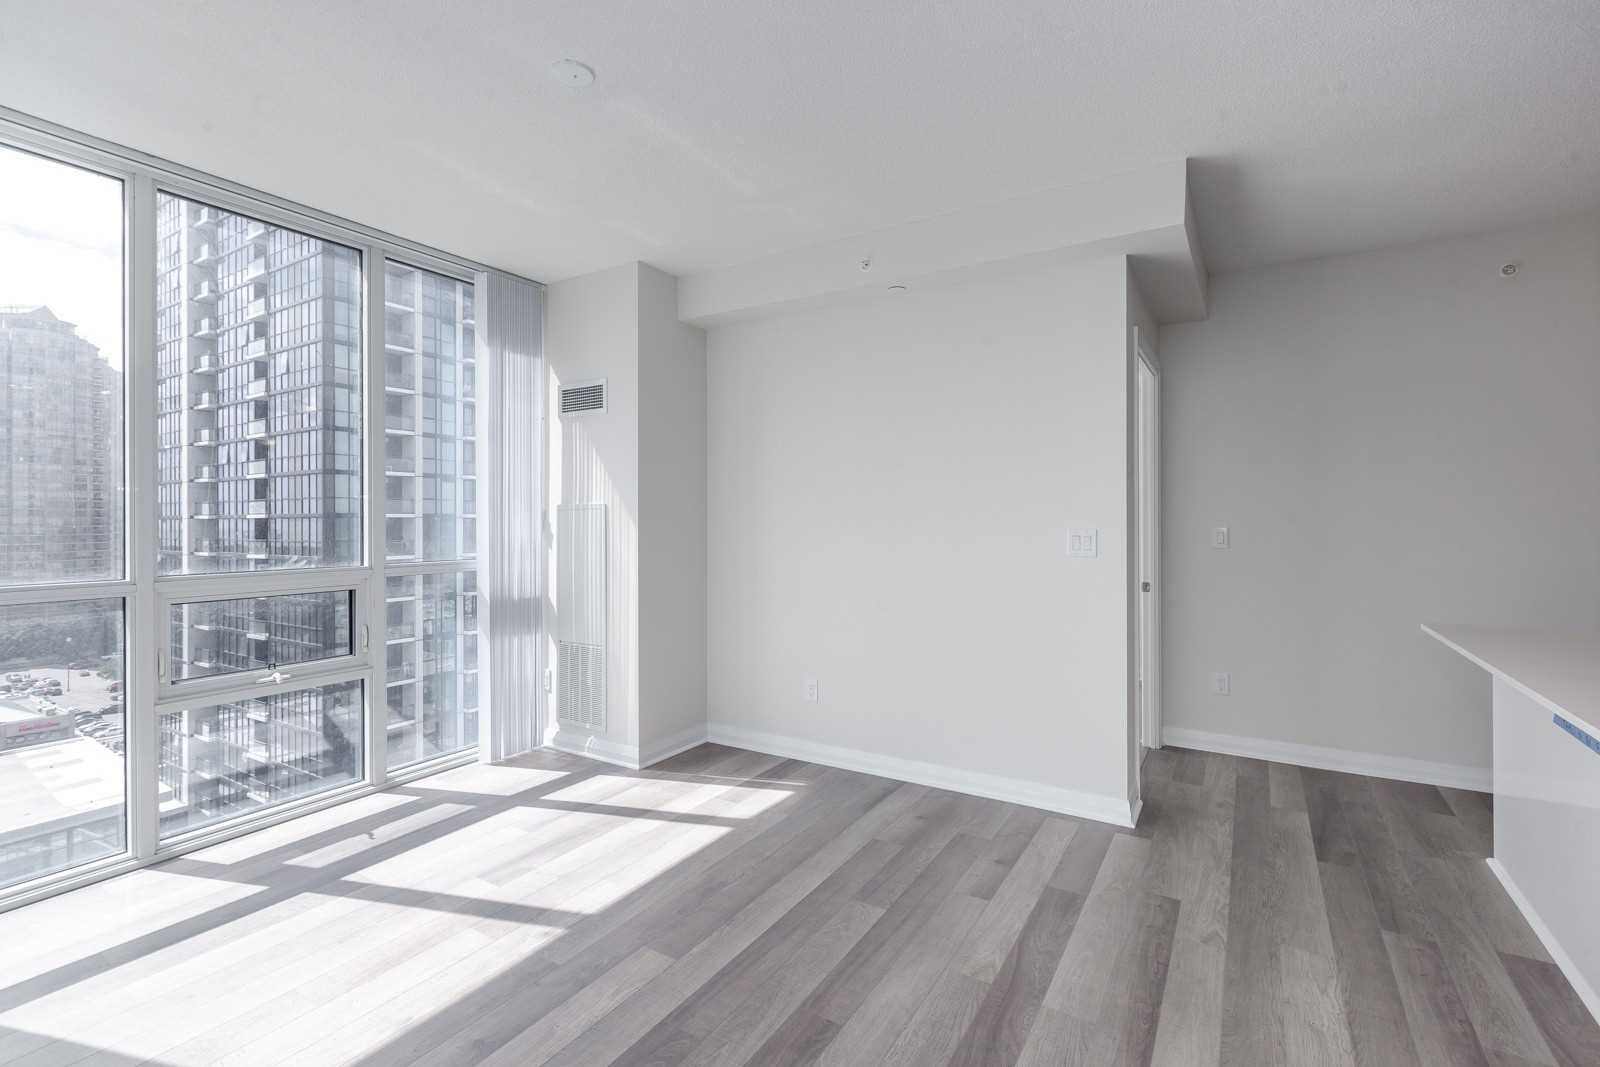 Photo 9: Photos: 1204 5025 Four Springs Avenue in Mississauga: Hurontario Condo for lease : MLS®# W4582092